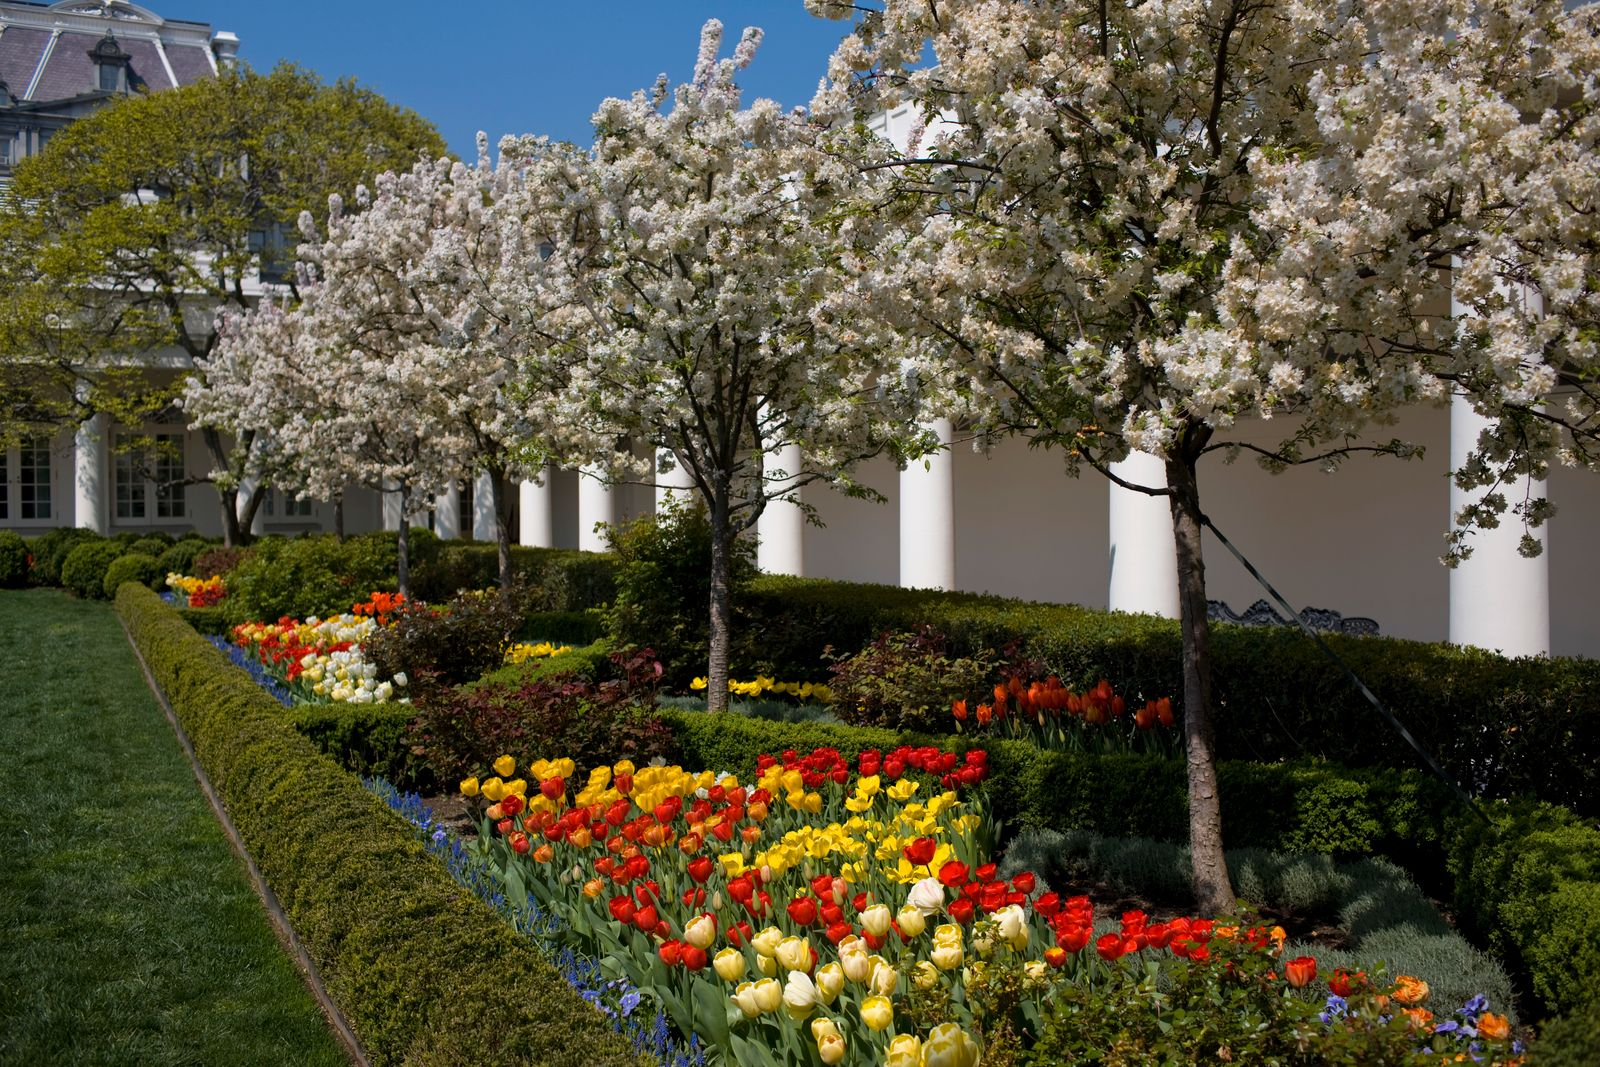 USA - White House - Rose Garden with Flowers in Bloom